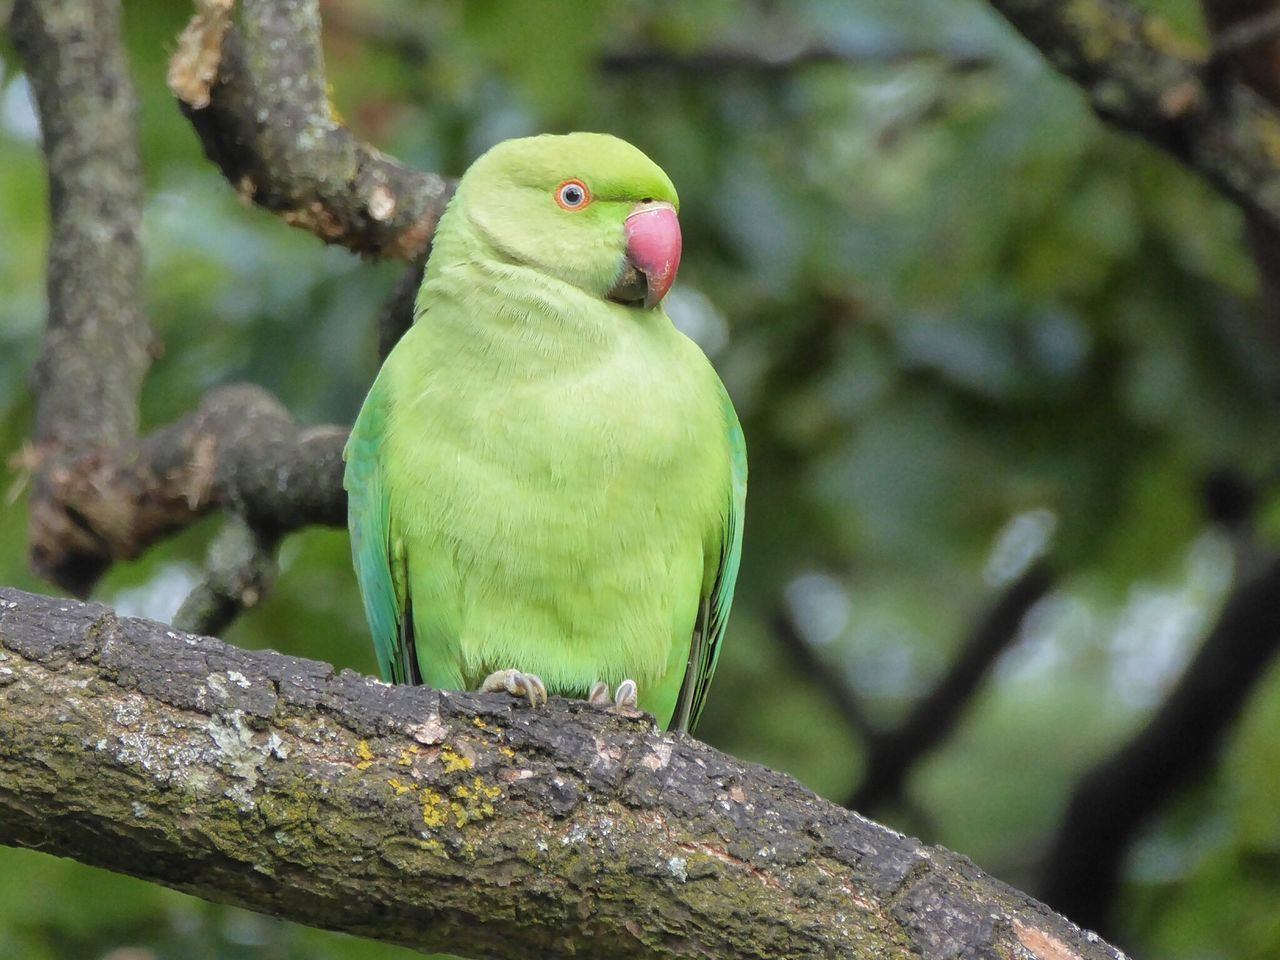 Rose Ring Parakeet Rose Ringed Parakeets Parakeet Parakeets Hyde Park Hyde Park, London London Parks London LONDON❤ Birds Bird Photography Birds_collection Birdwatching